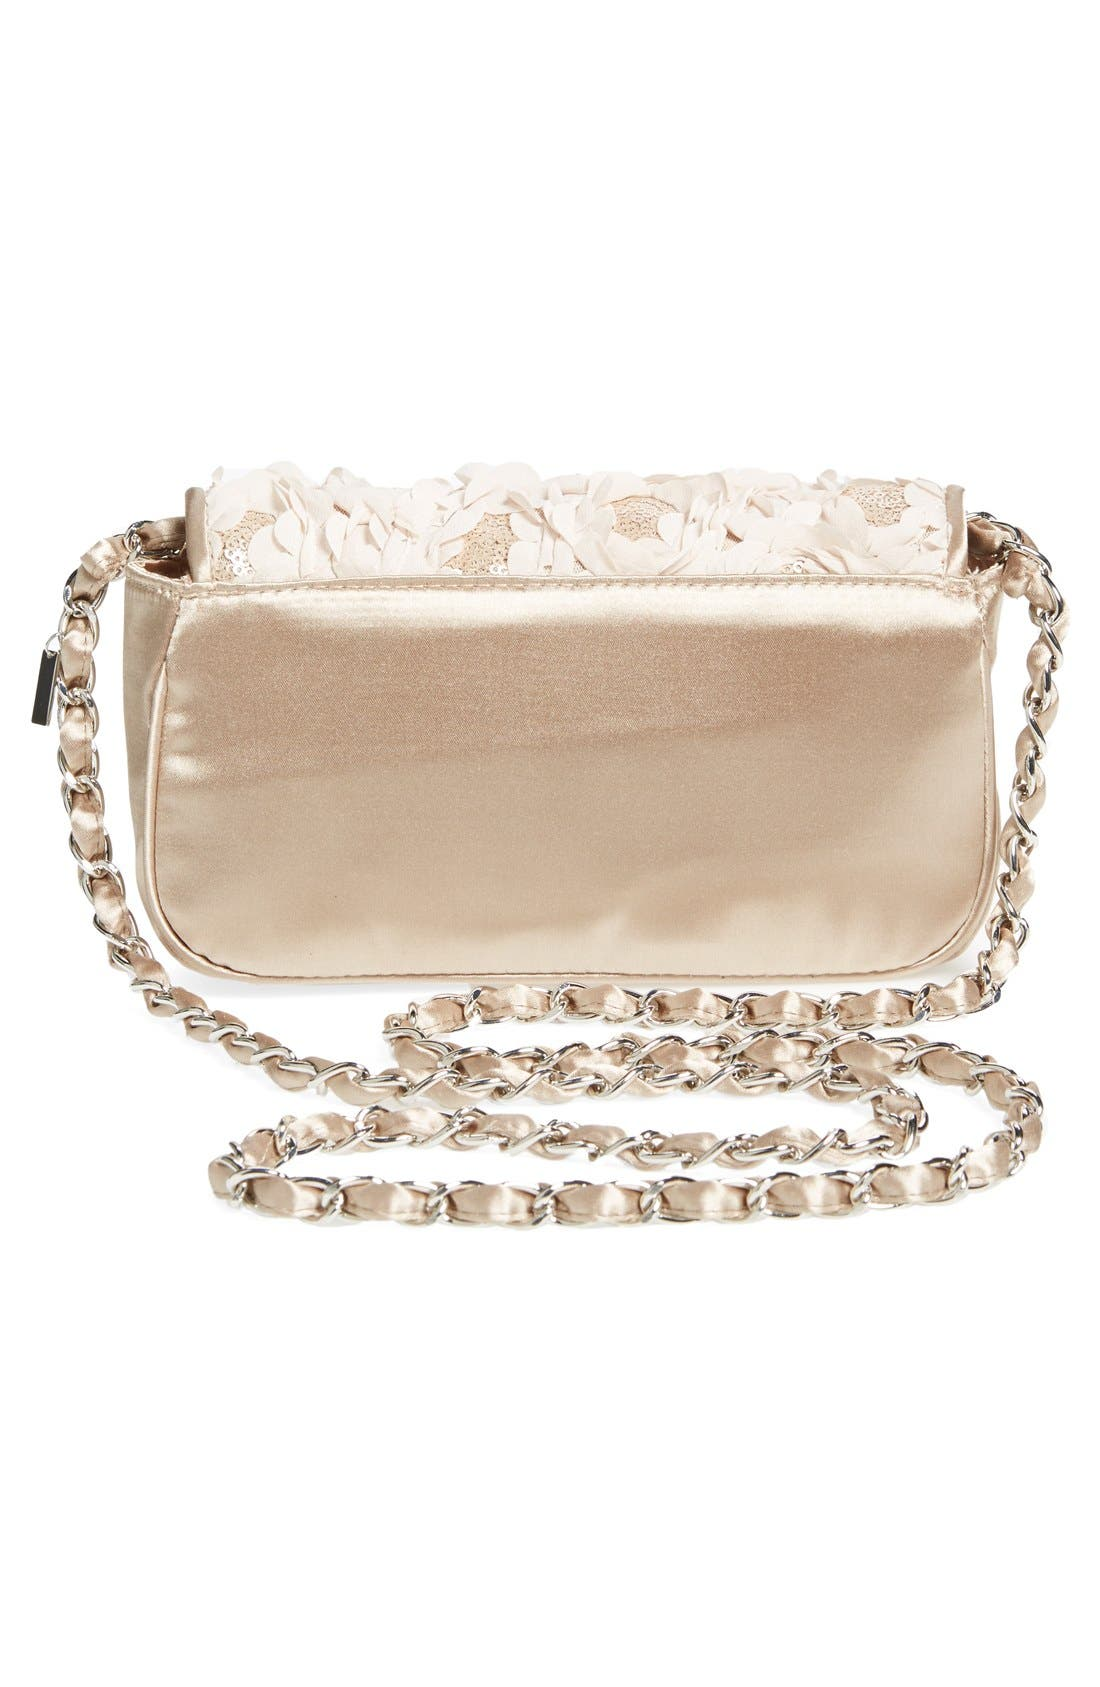 'Lassus' Satin Clutch,                             Alternate thumbnail 3, color,                             Stone